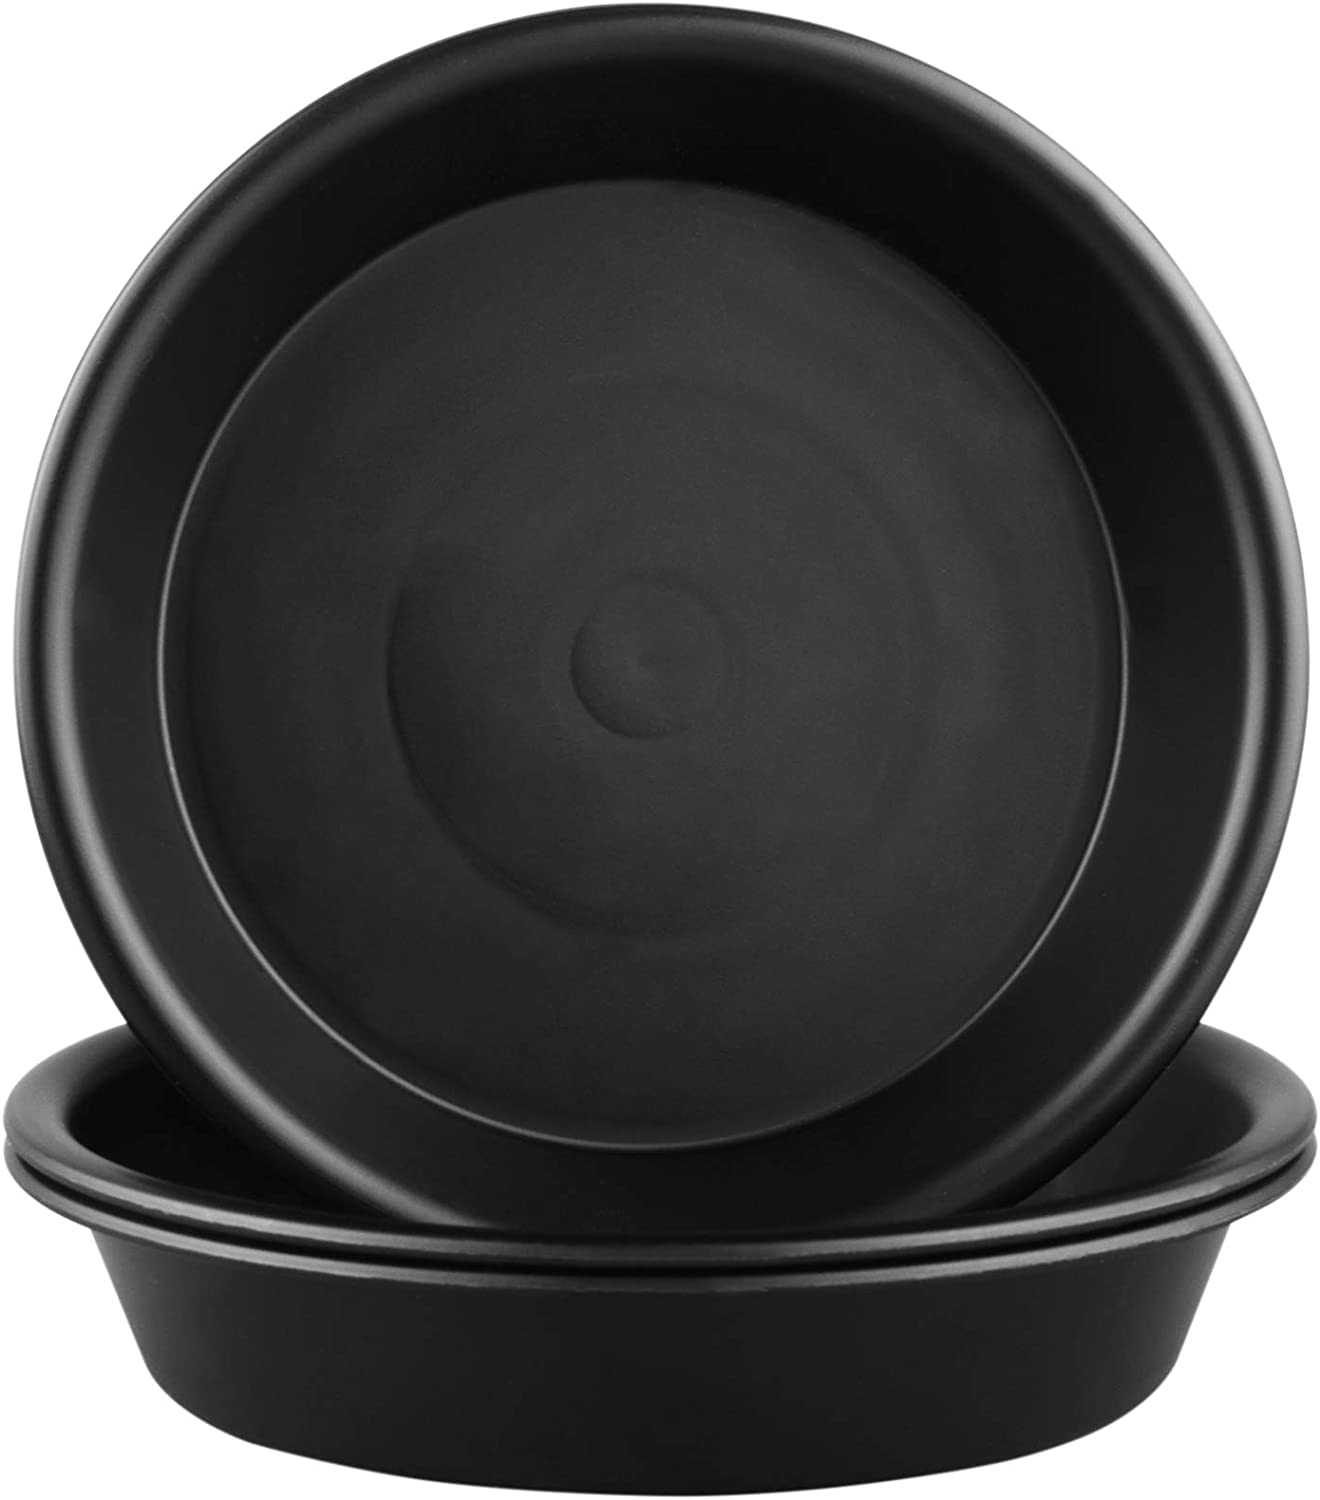 QDBNW Plant Saucer 10 inch of 3 Pack Black Heavy Duty Sturdy Durable Plastic Drip Trays, with 3 Pcs Plant Labels, Plant Trays for Indoor Outdoor Garden